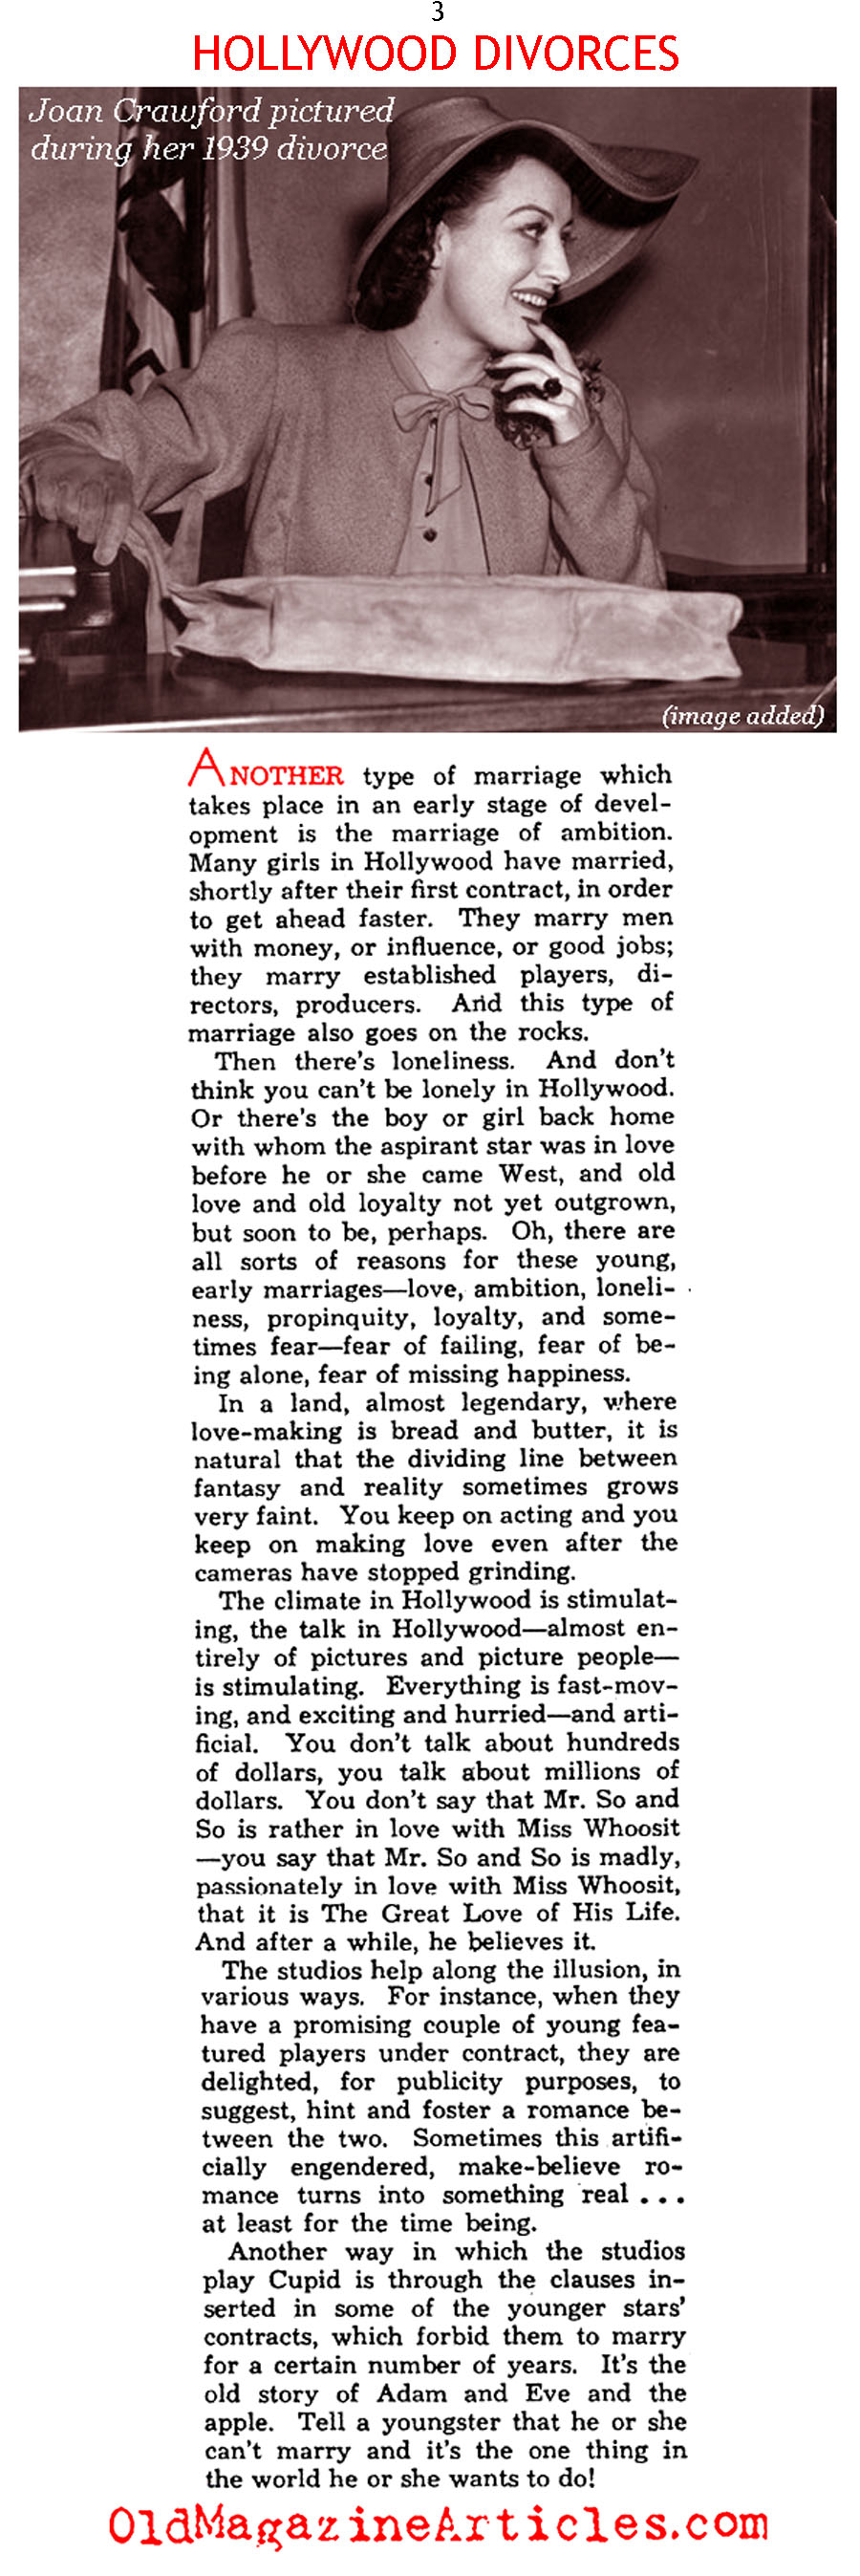 Hollywood's Case Against Monogamy (Photoplay Magazine, 1938)